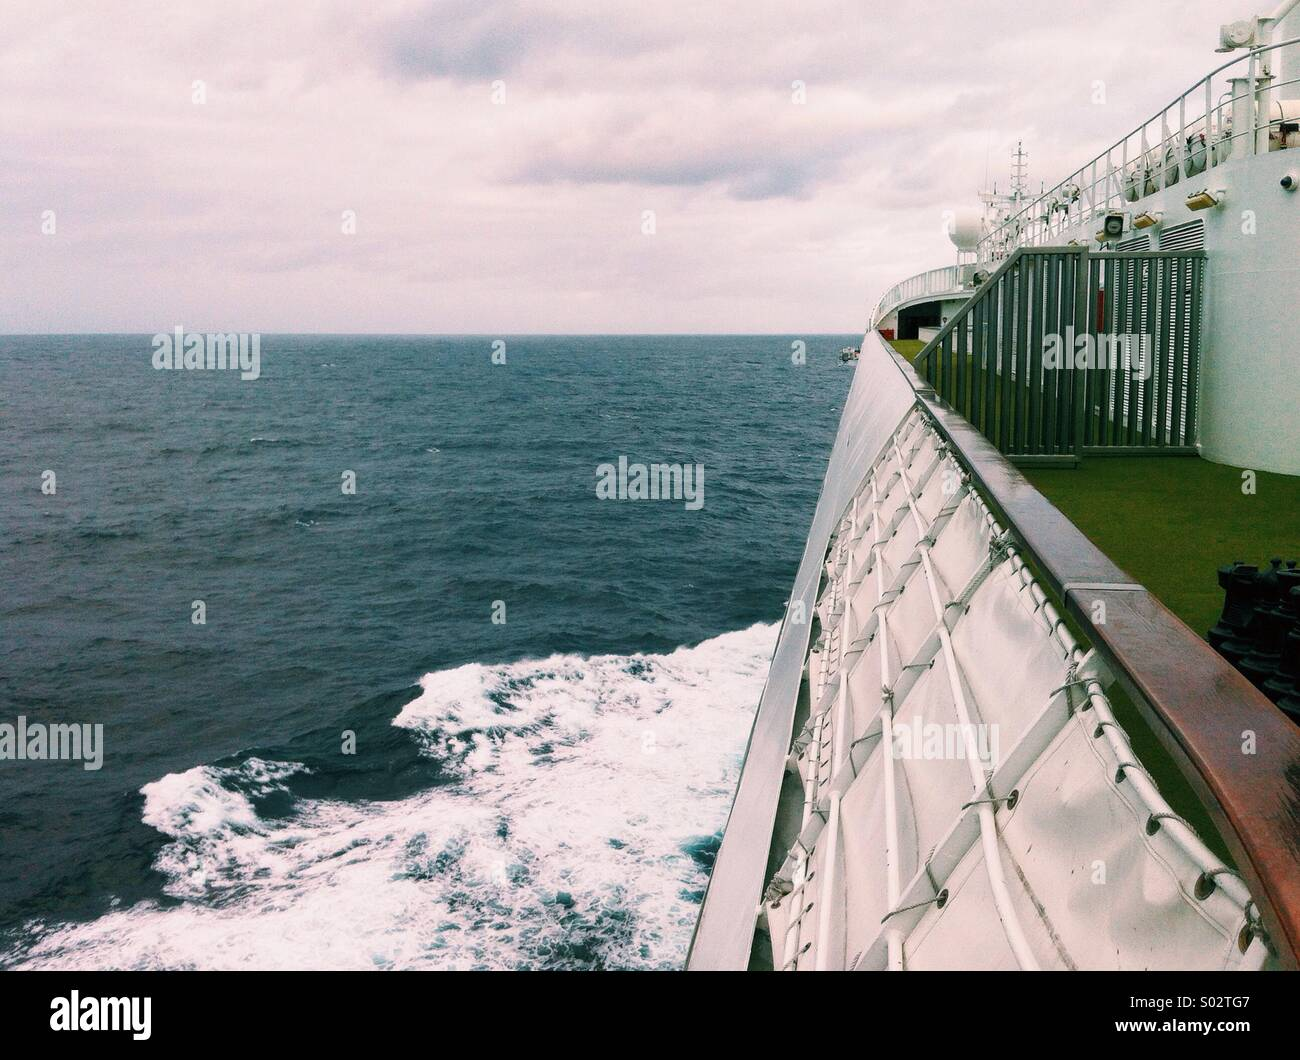 View out onto the sea from the top deck of a cruise ship - Stock Image